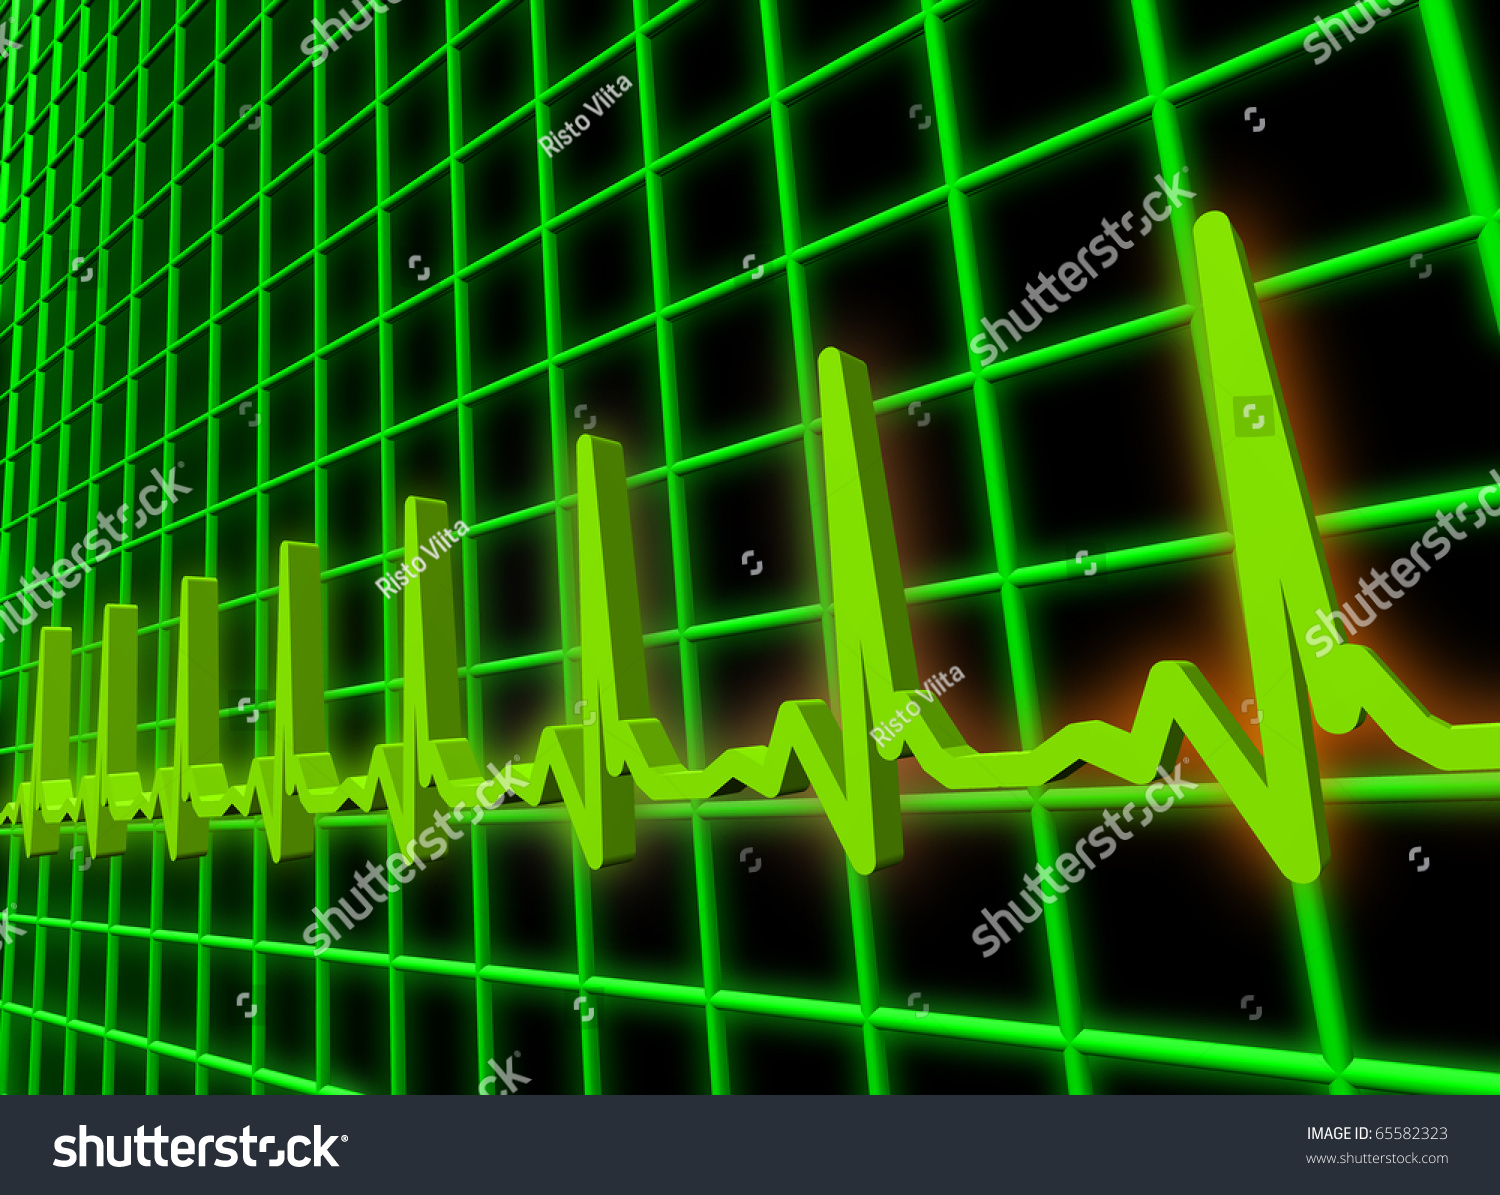 heart beat diagram polaris rzr 800 parts human ekgecg pulse stock illustration